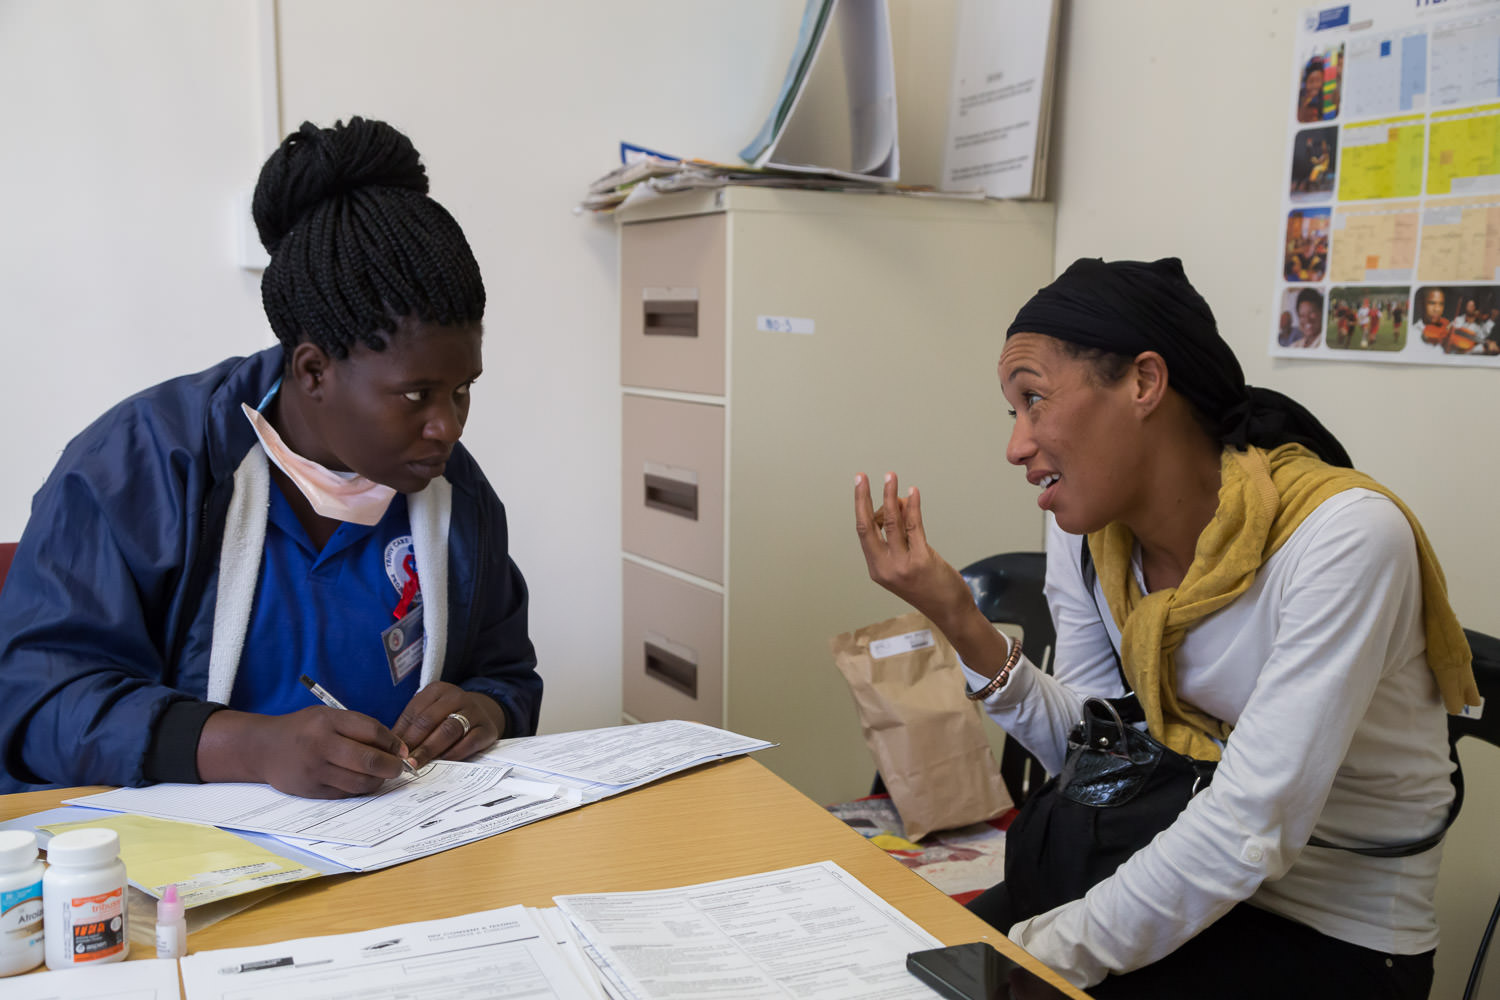 HIV Clinic Consultation in which patients are assessed and educated on how to live a long, healthy life with HIV.